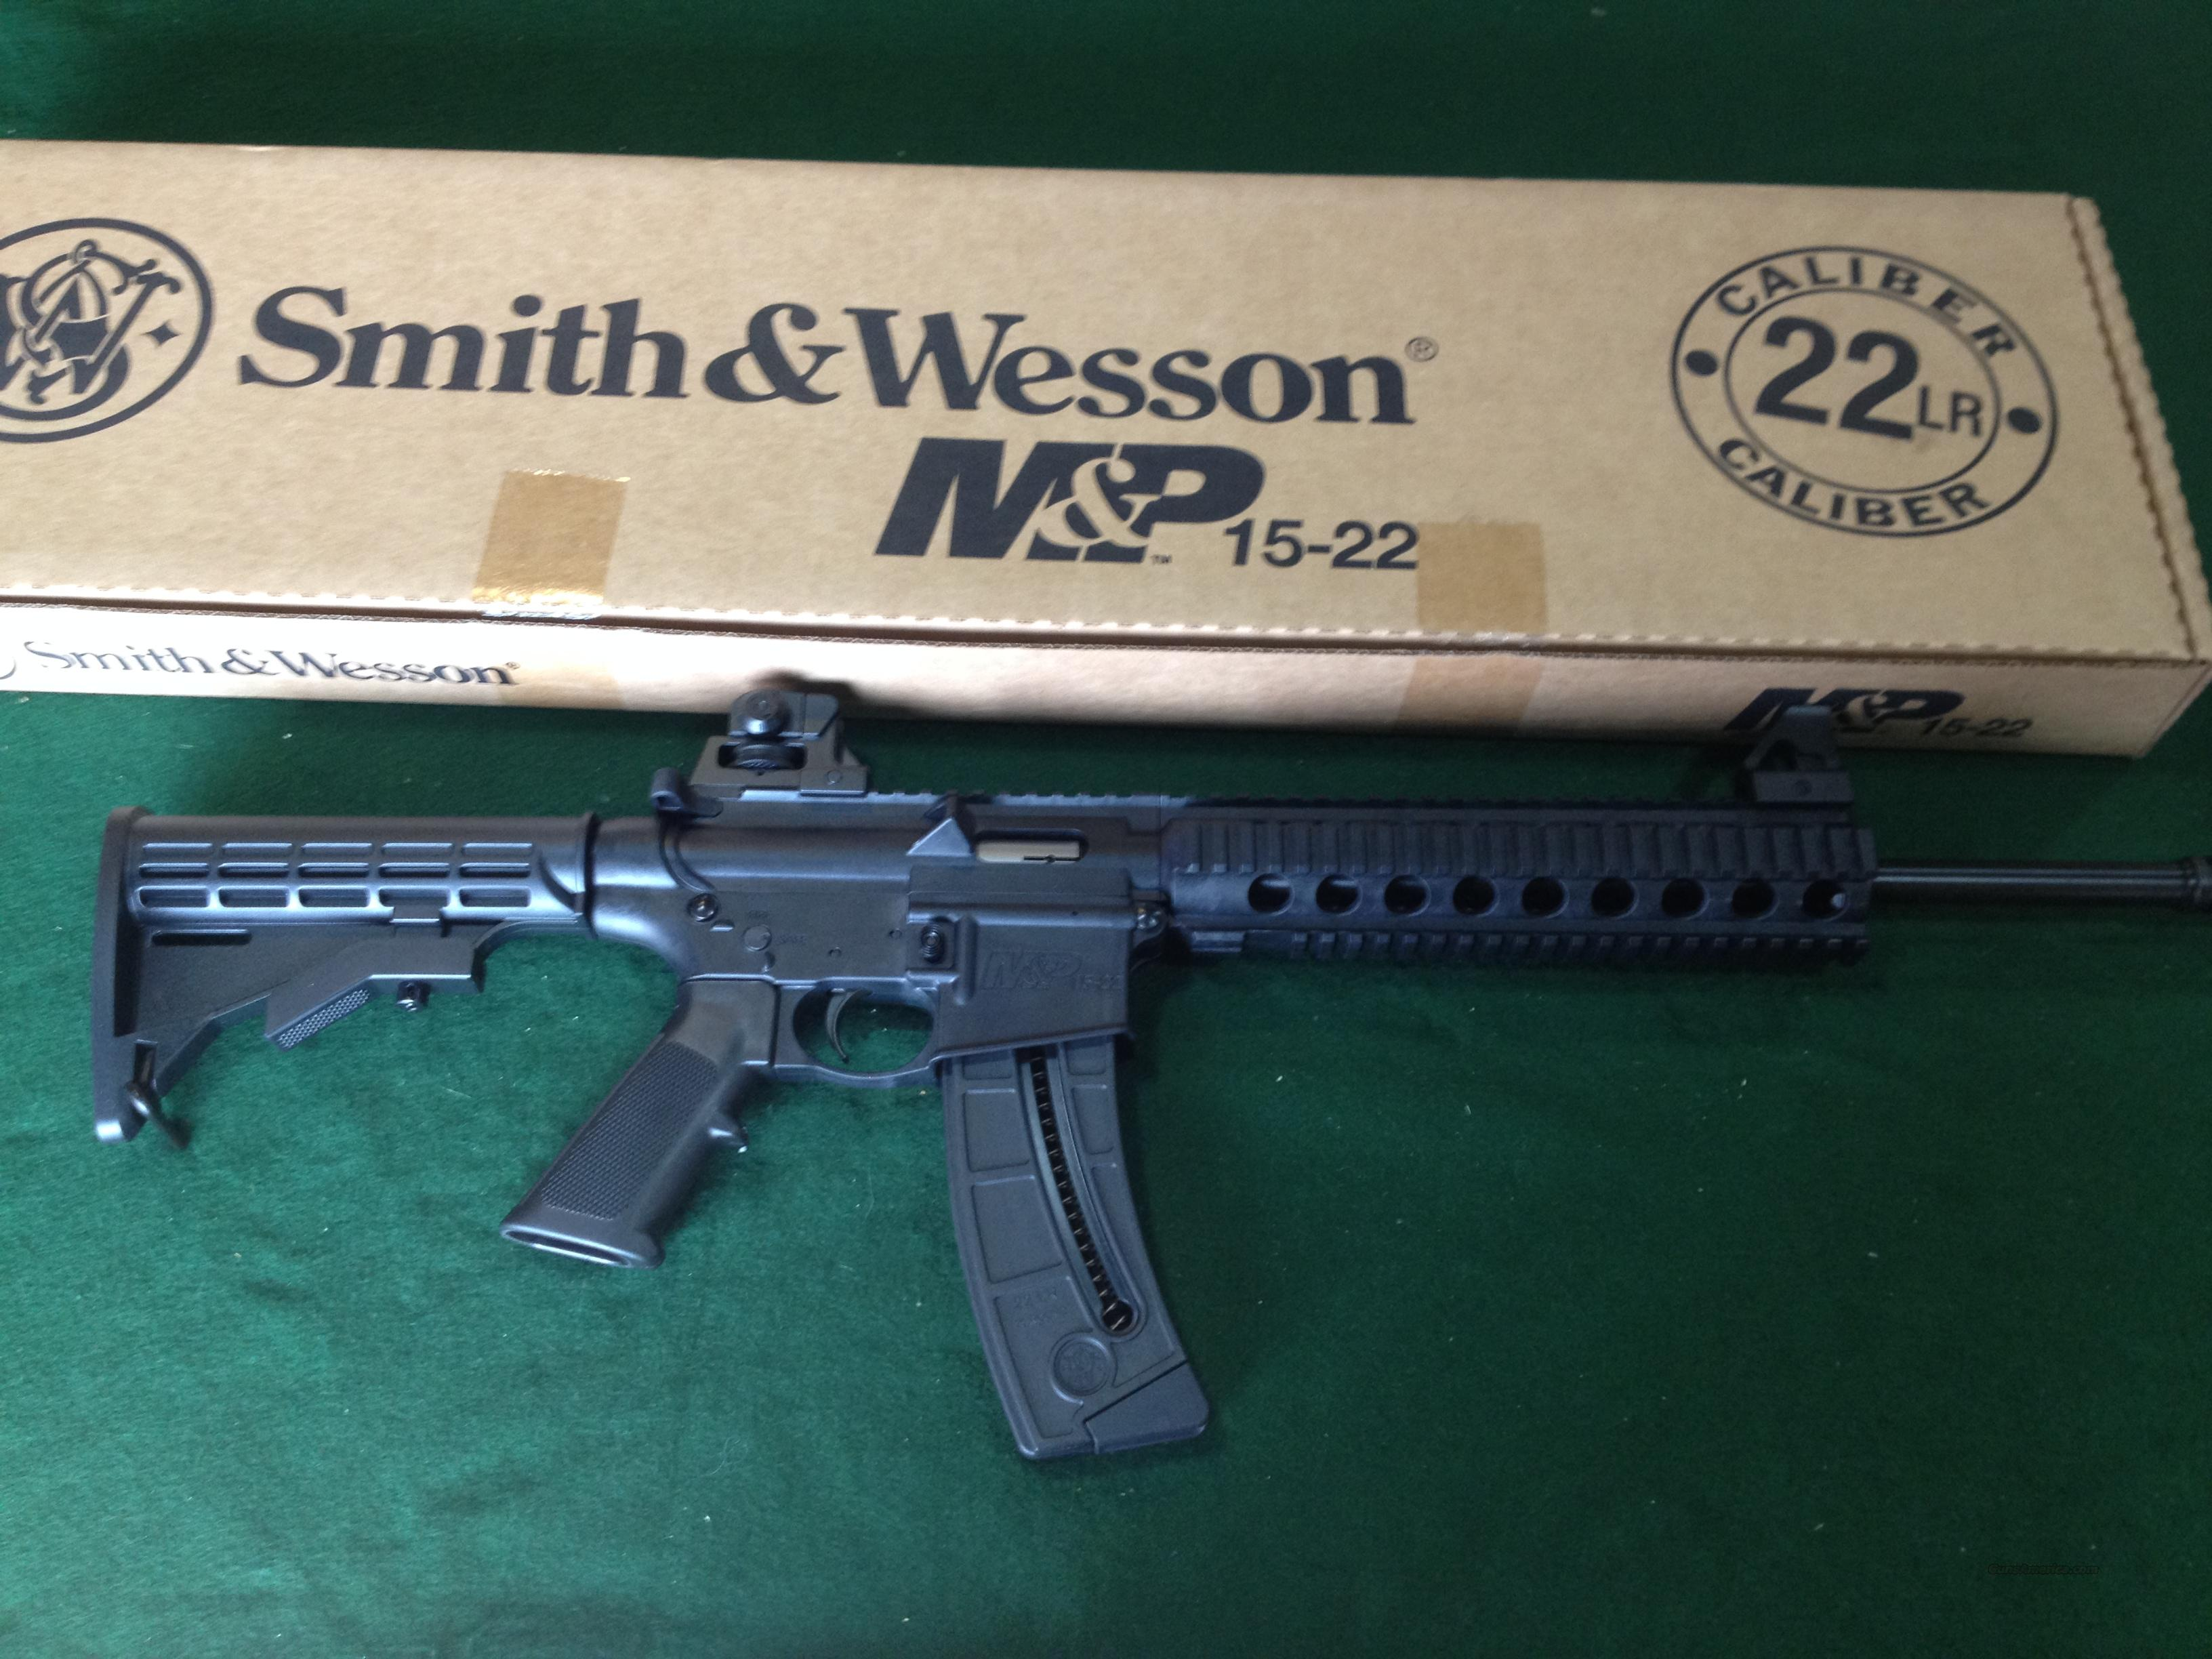 Smith & Wesson M&P15-22 22LR  Guns > Rifles > Smith & Wesson Rifles > M&P